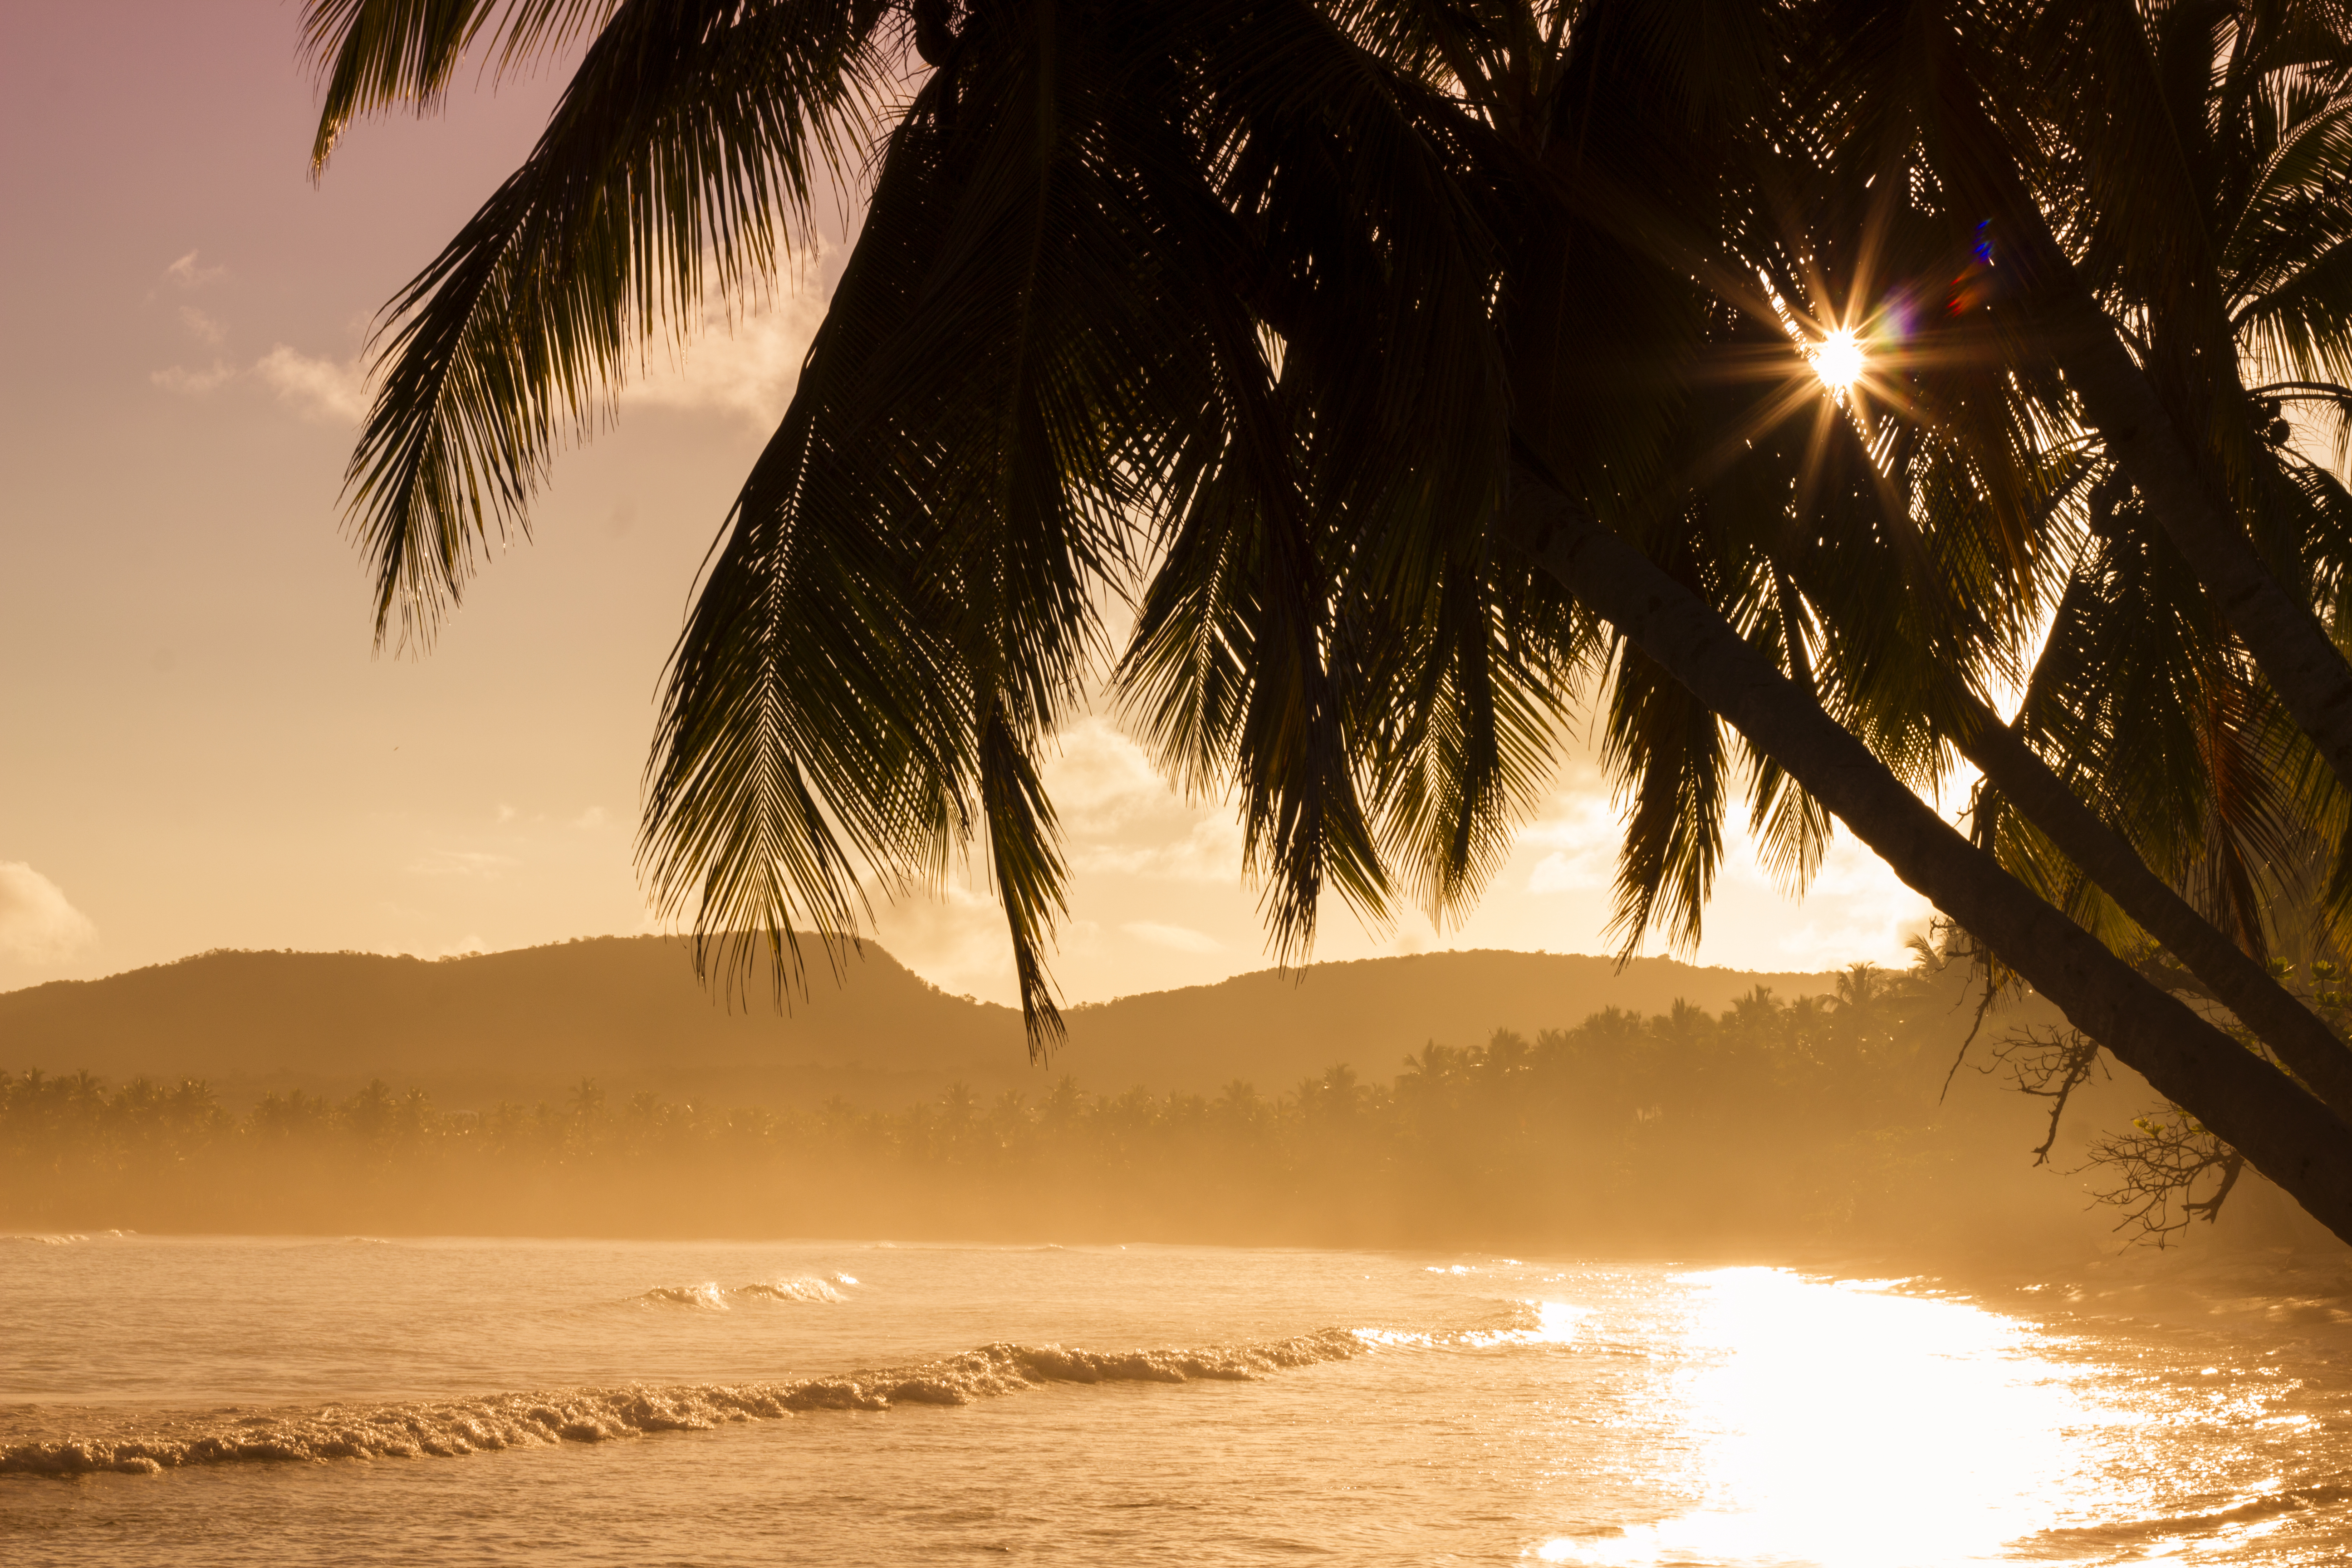 silhouette of palm tree near body of eater free stock photo